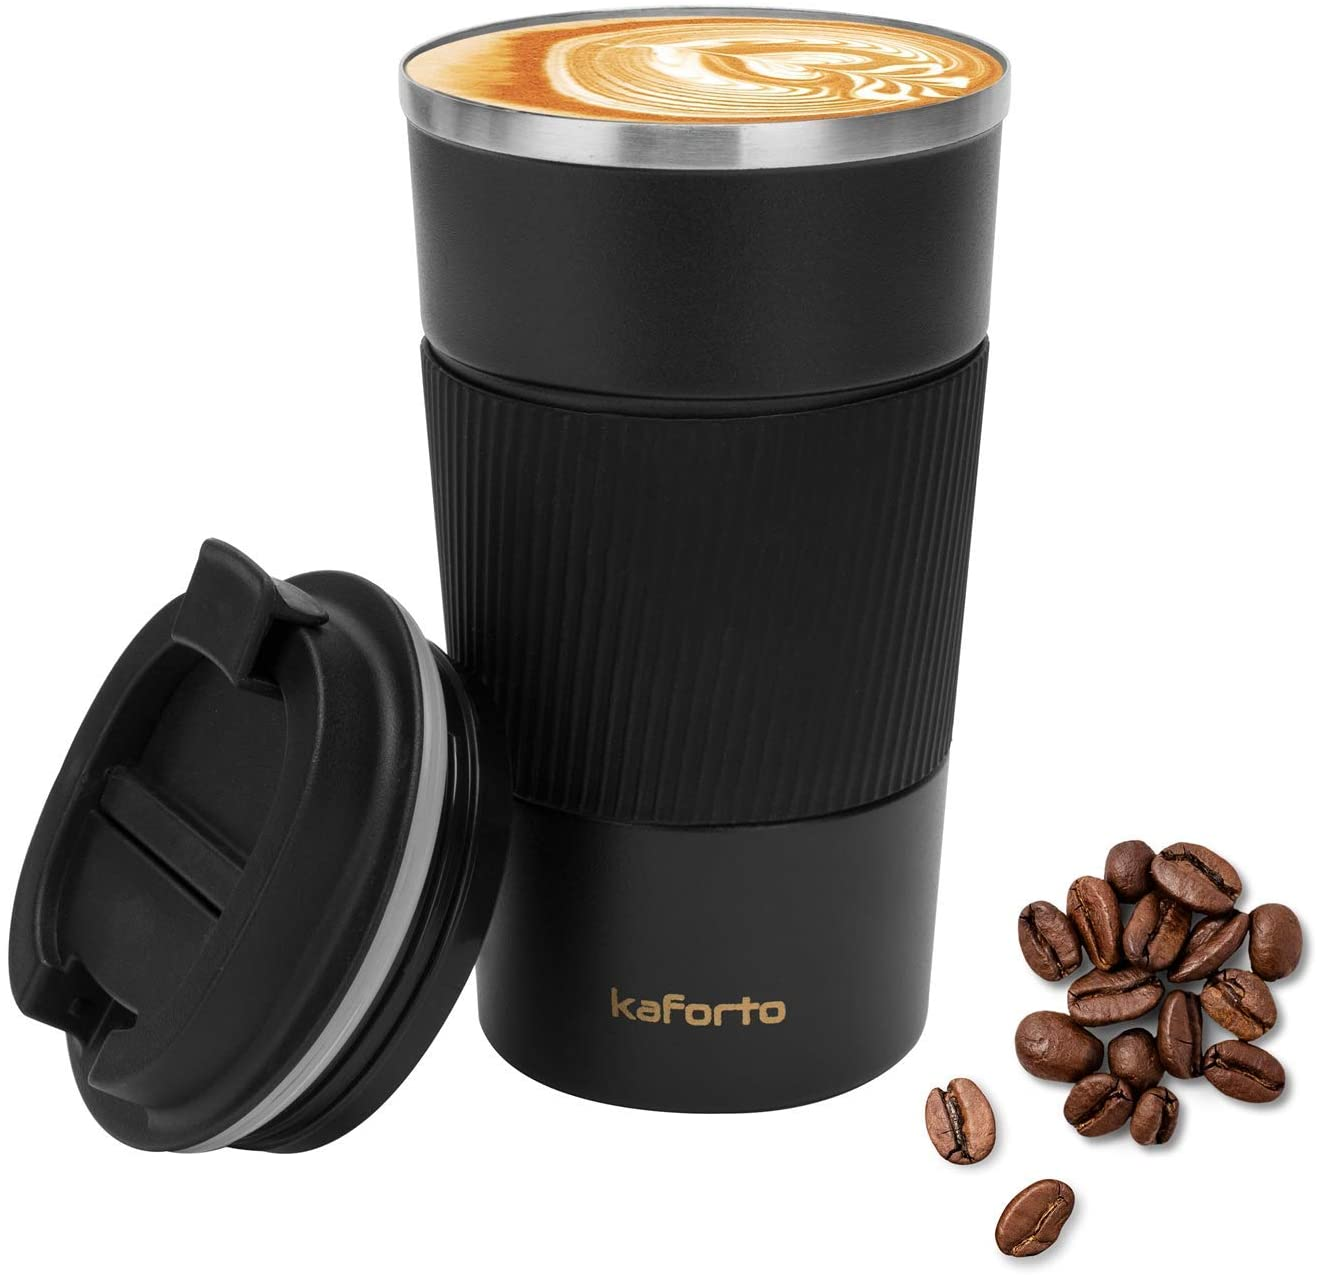 Insulated Coffee Travel Mug Double Wall Stainless Steel Vacuum Tumbler Coffee Cup for Home, Office, Outdoor Works Great for Ice Drinks and Hot Beverage- 510ml/17oz, Black